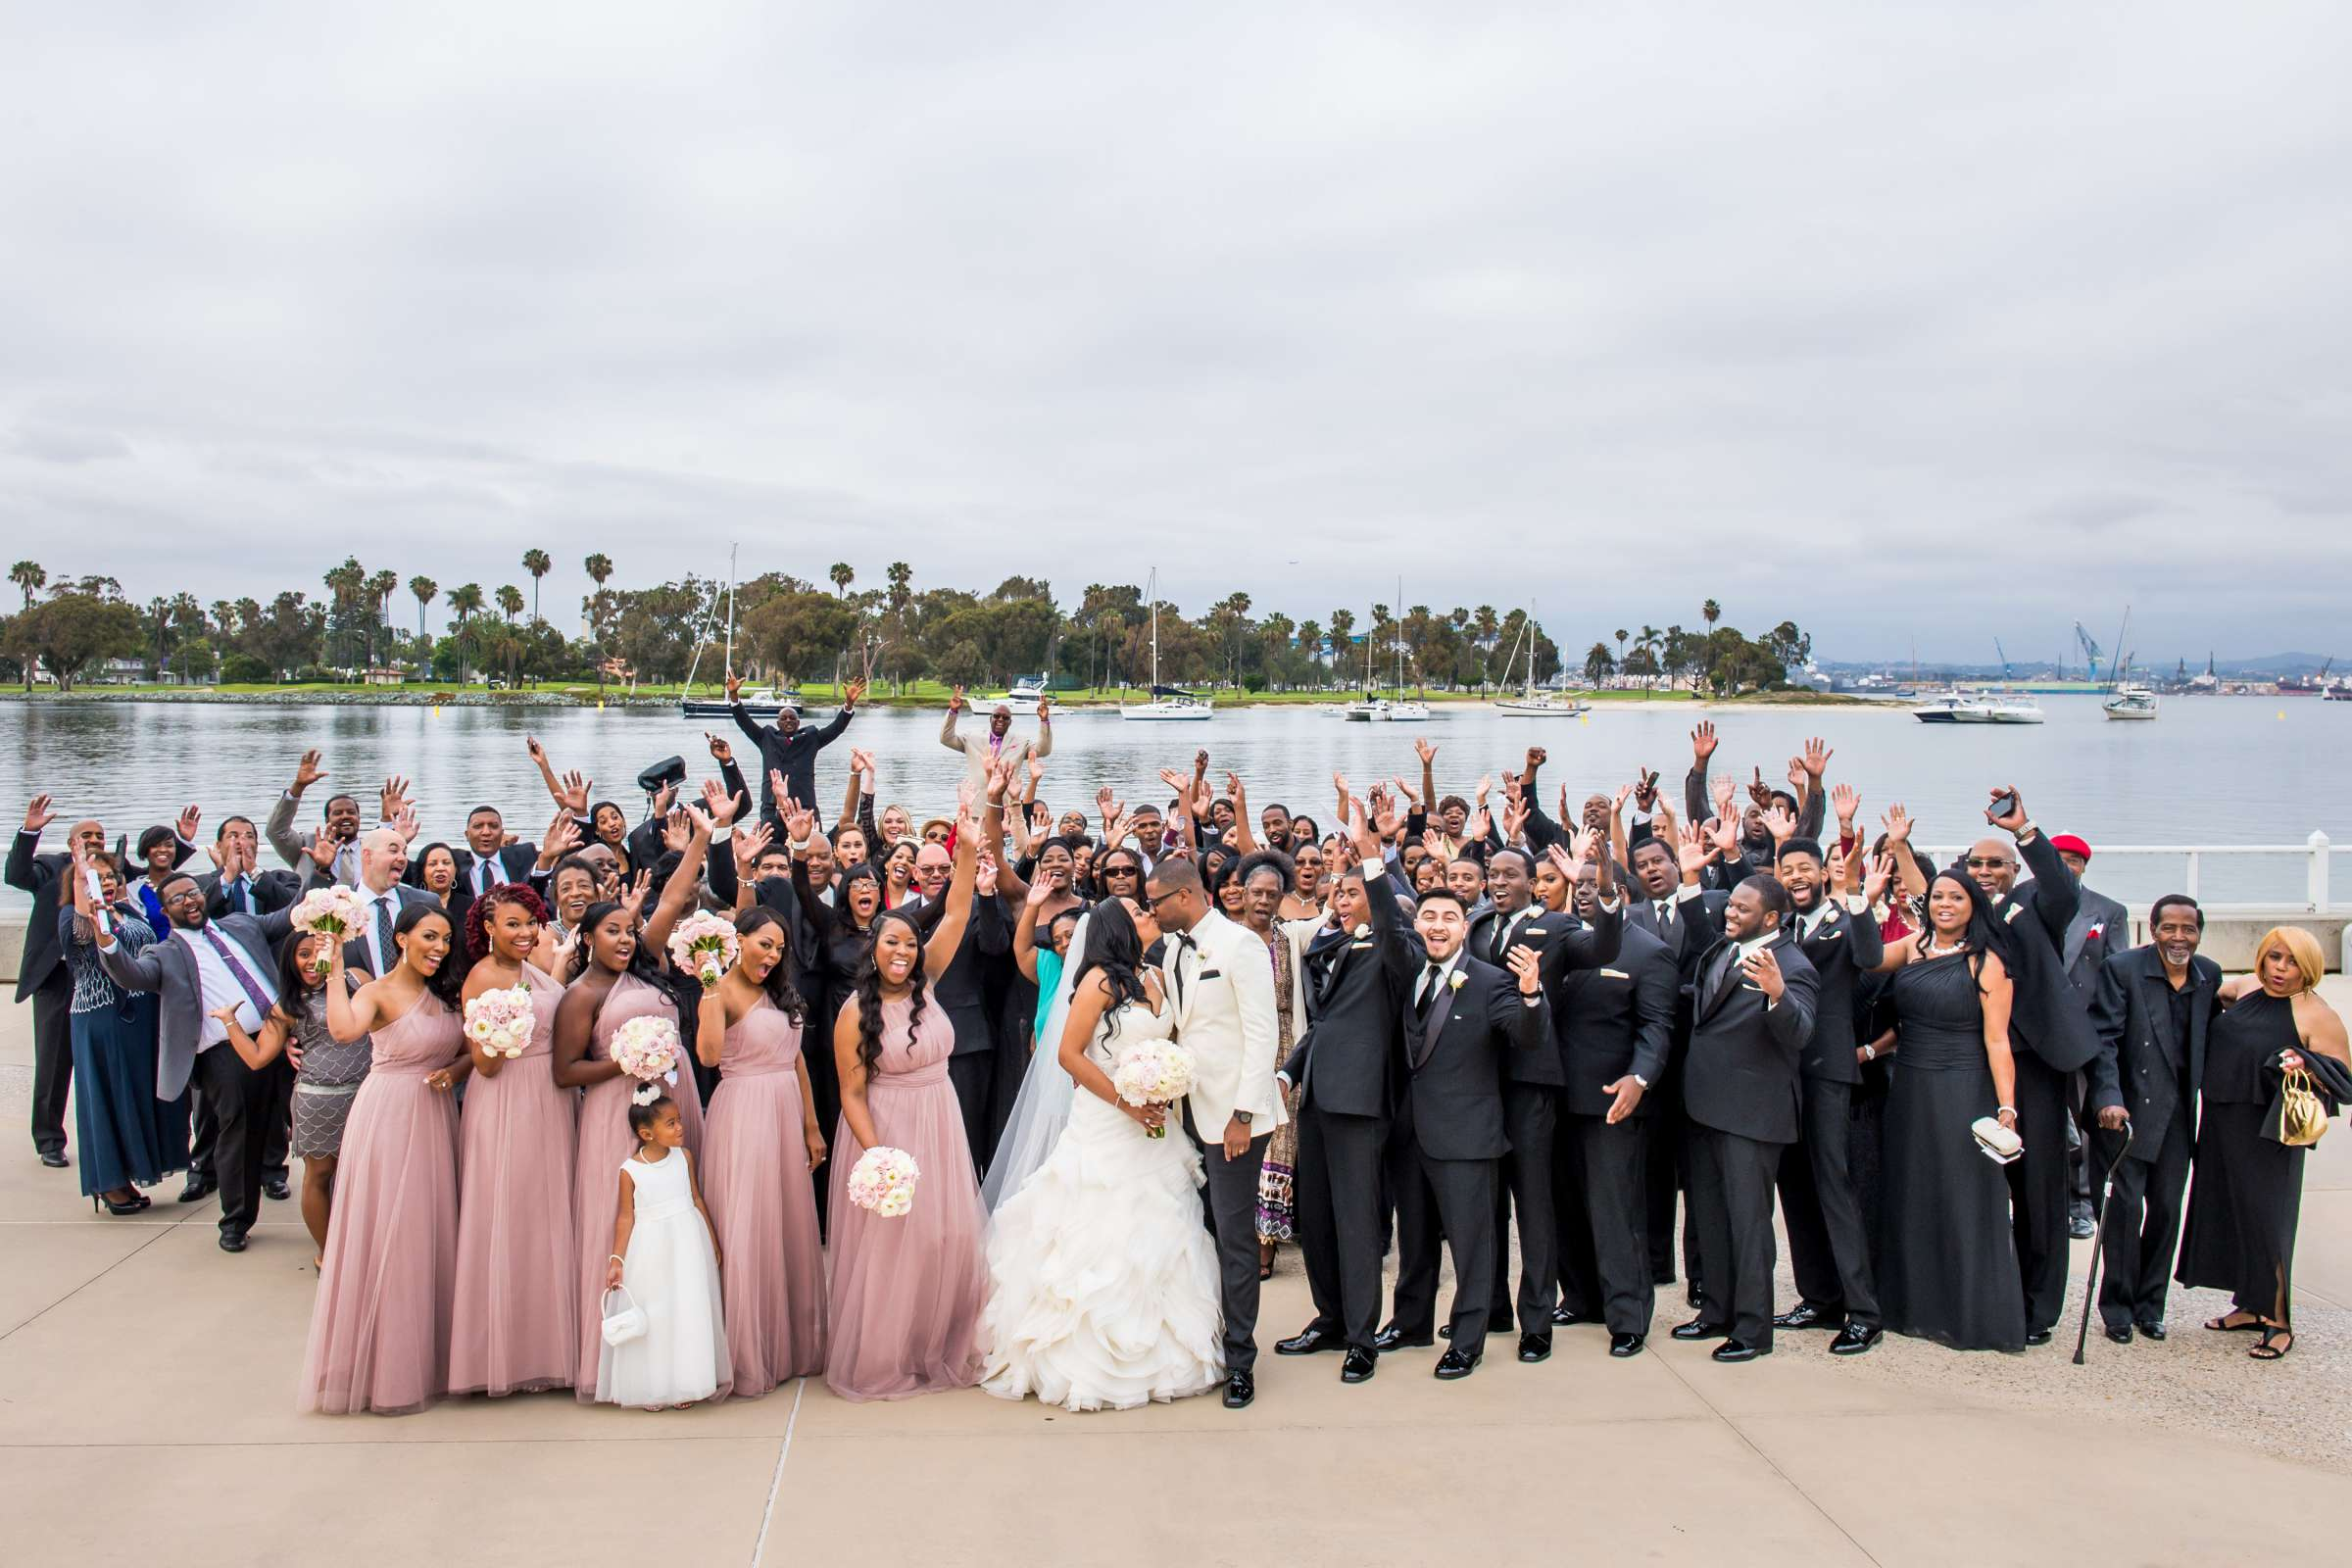 Coronado Community Center Wedding coordinated by First Comes Love Weddings & Events, Nikia and Charles Wedding Photo #58 by True Photography